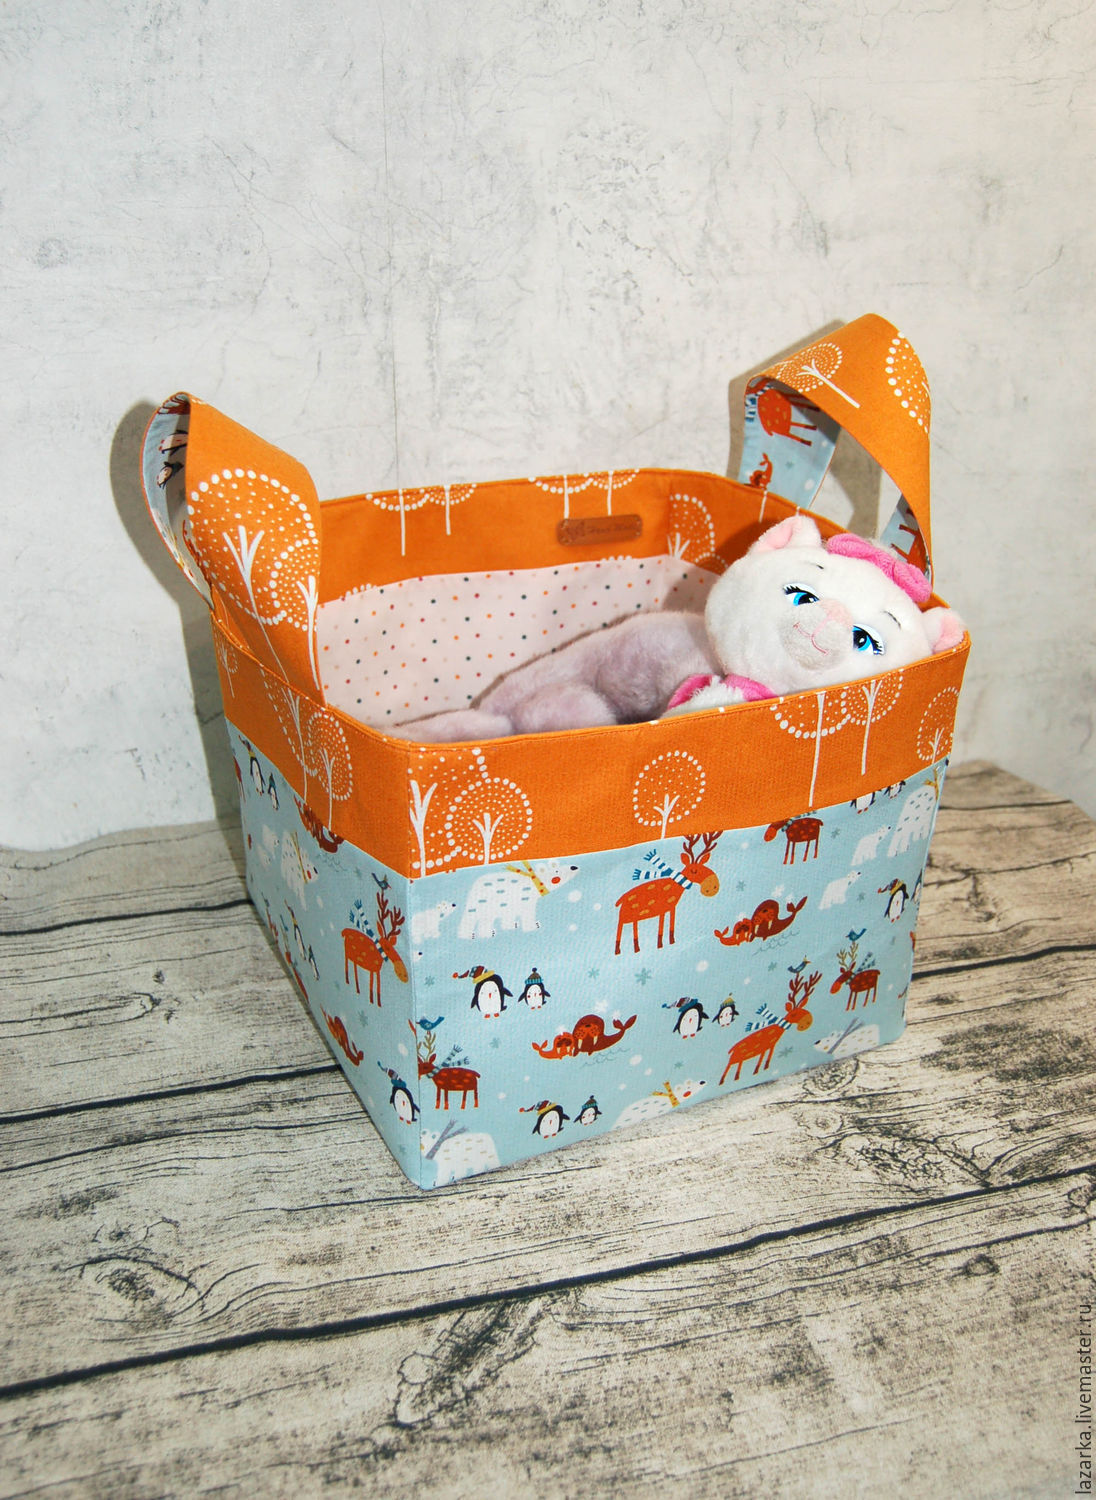 Basket Textile Toys Christmas Shop Online On Livemaster With